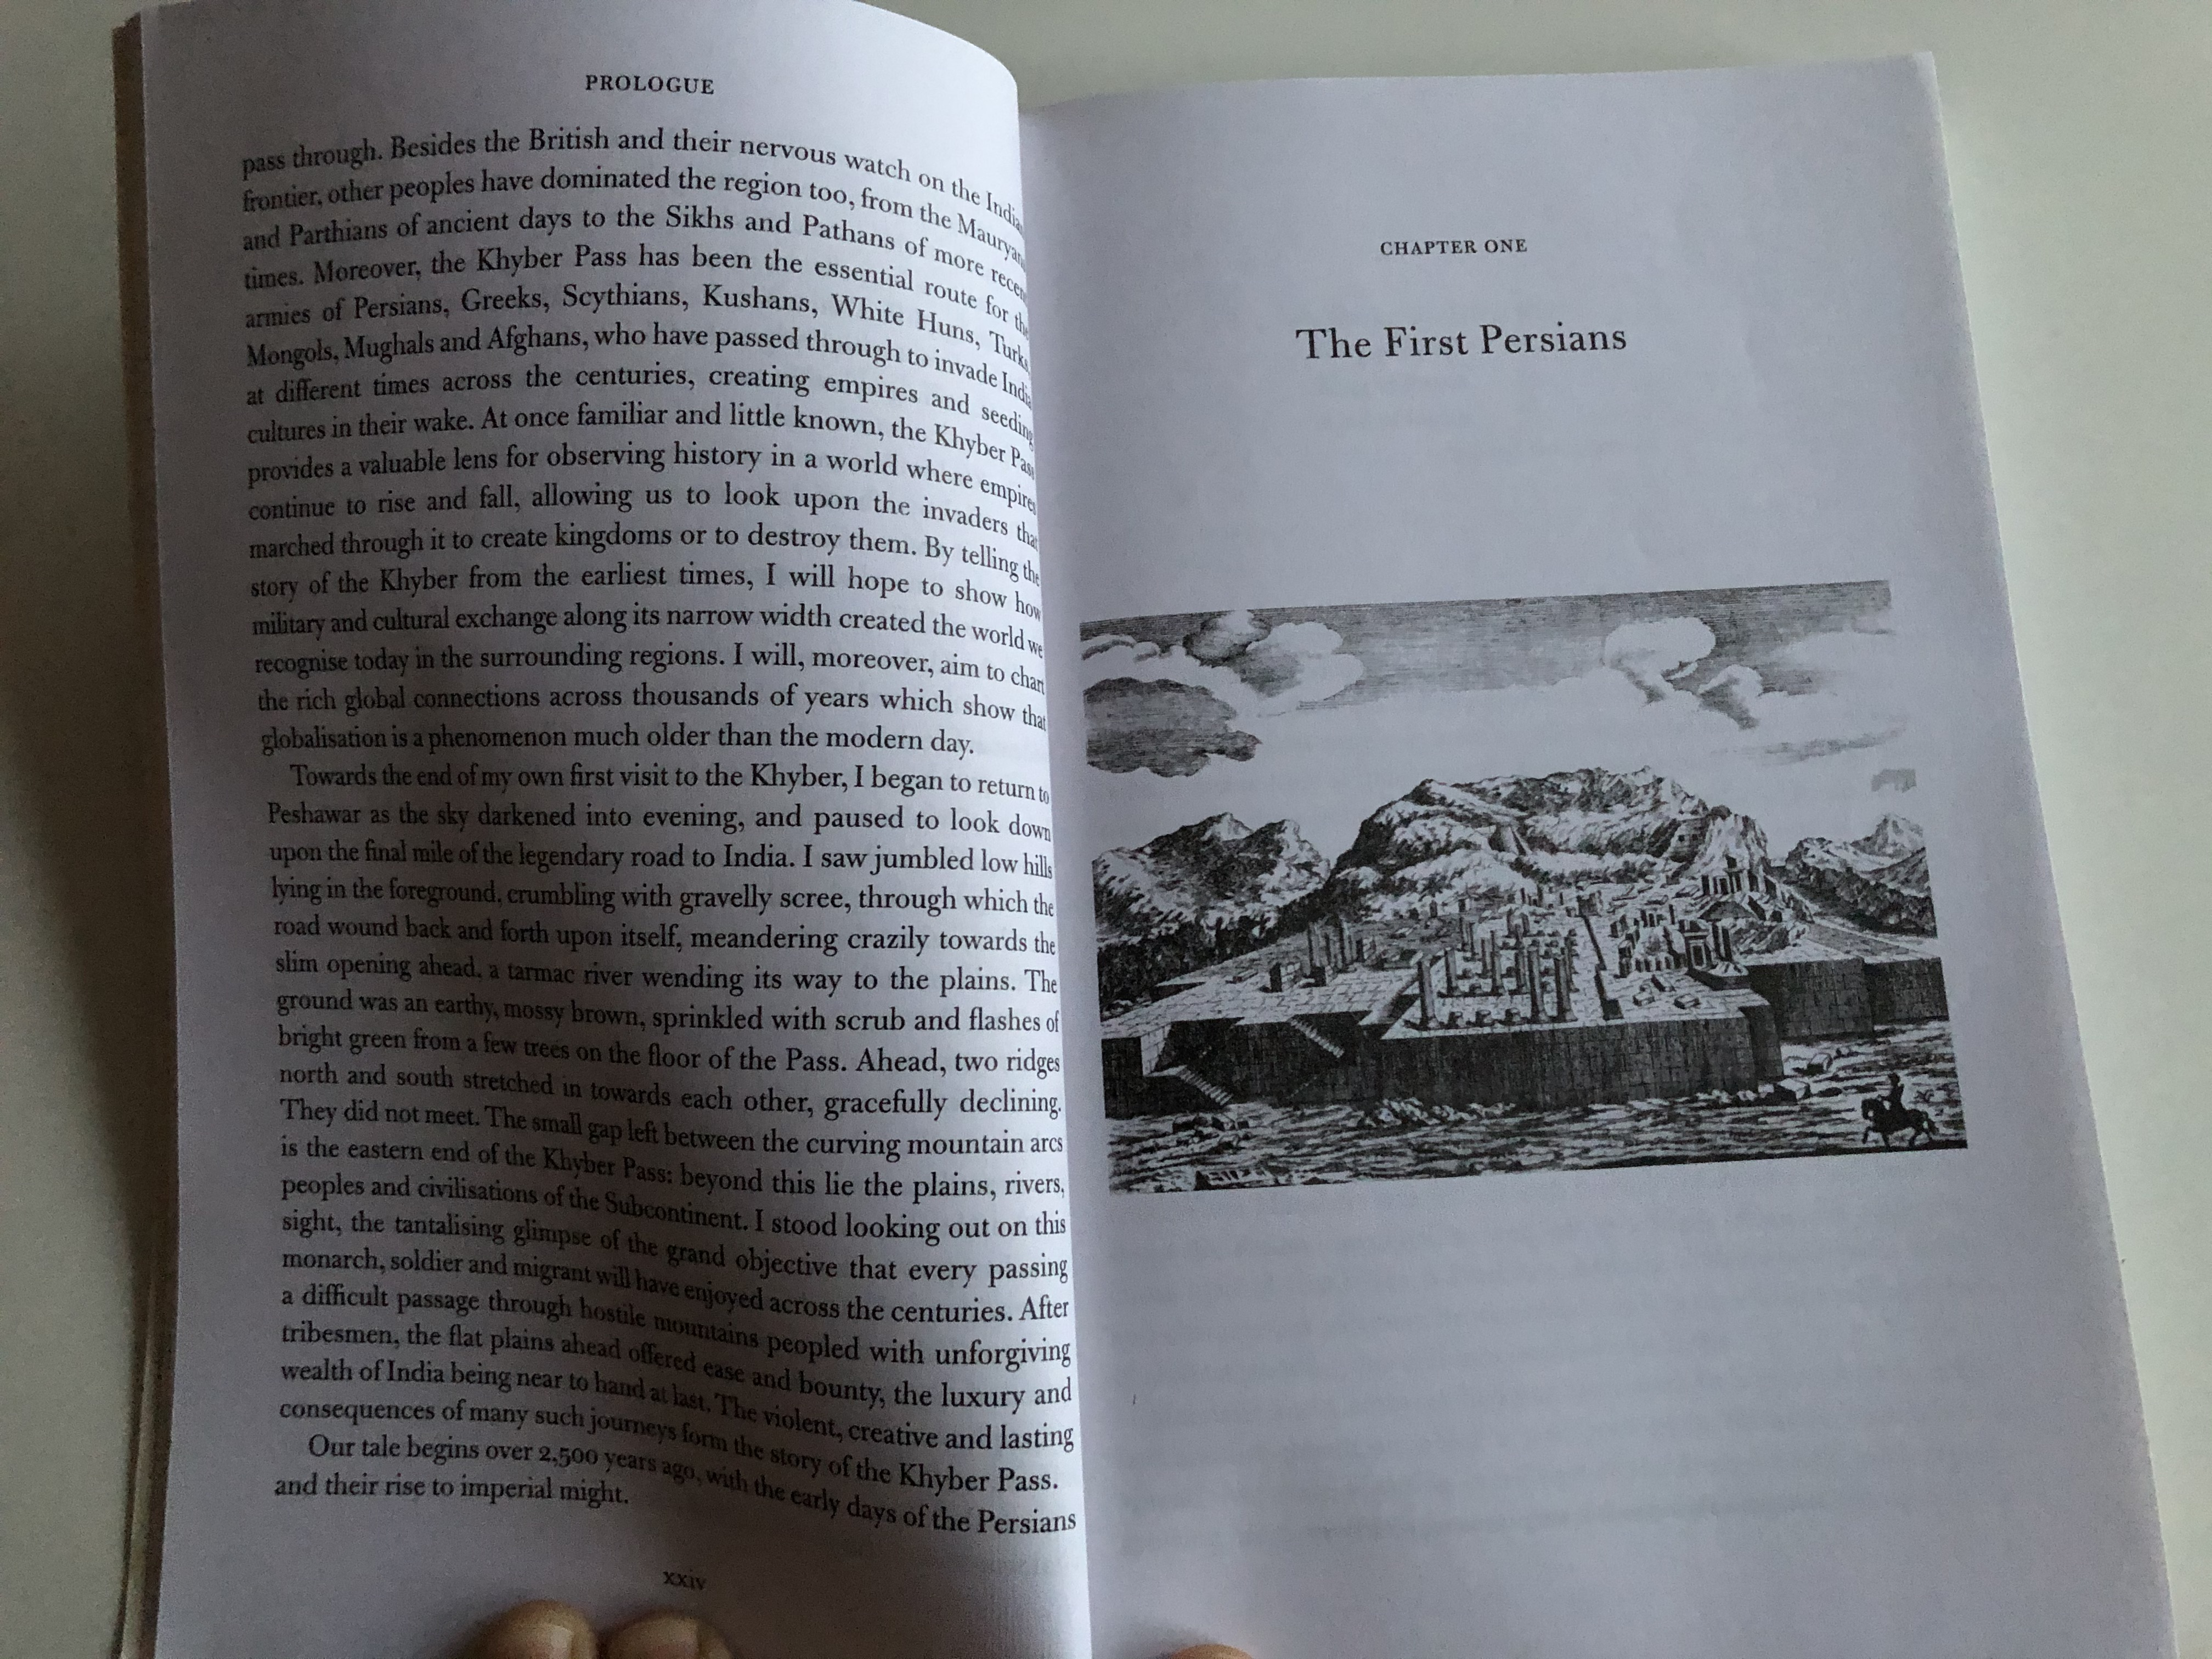 the-khyber-pass-a-history-of-empire-and-invasion-by-paddy-docherty-7-.jpg